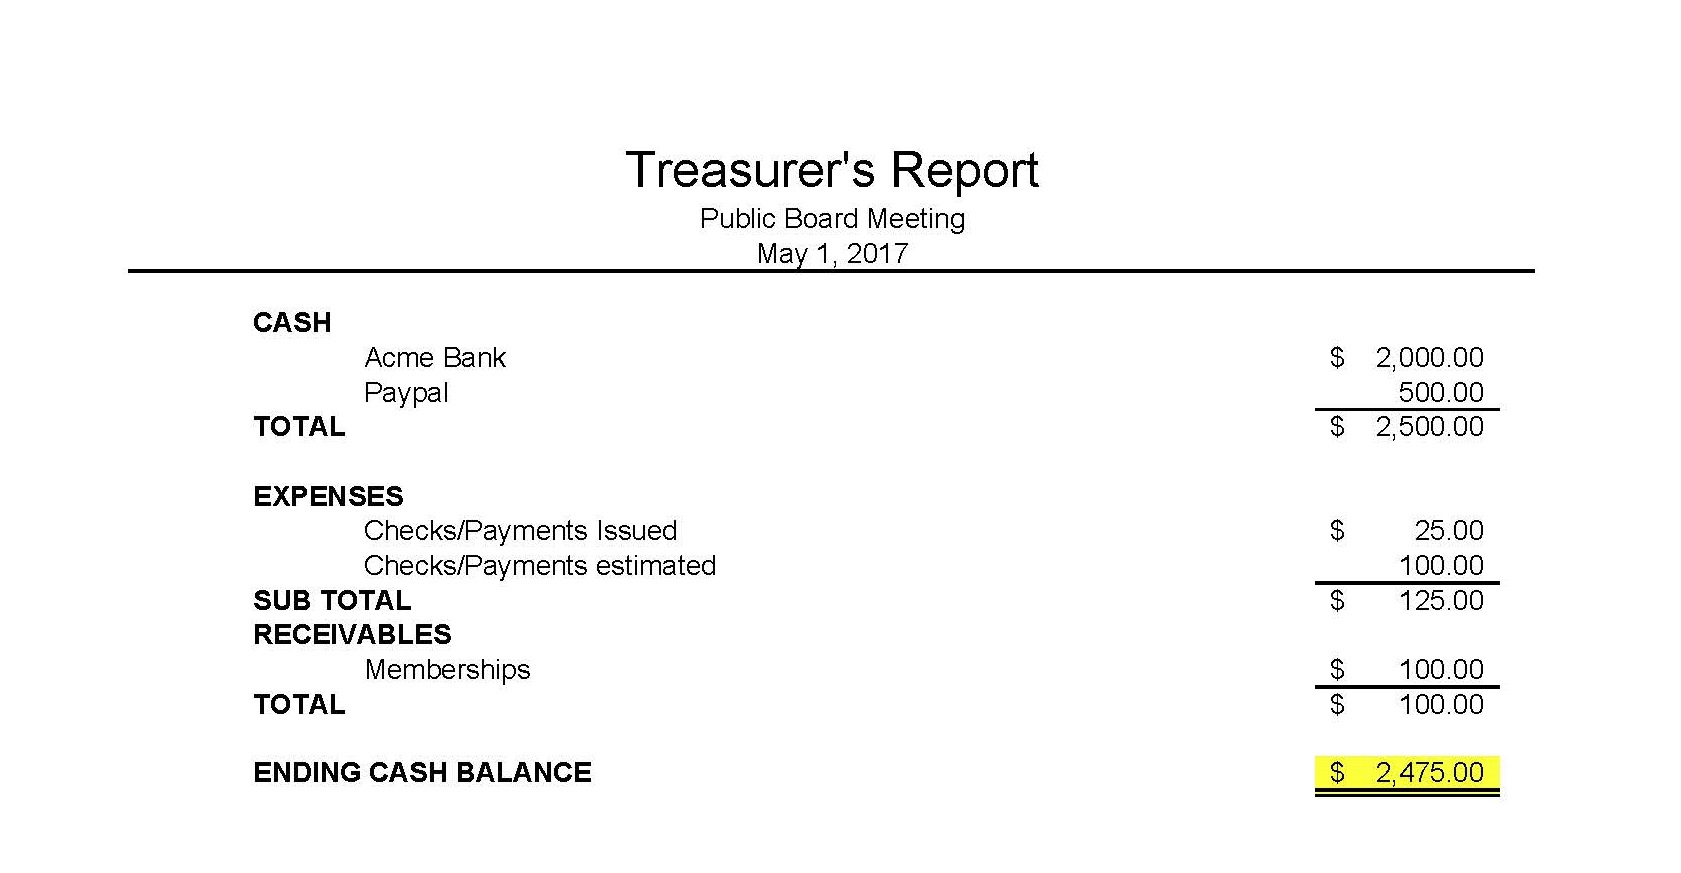 Treasurer report template 10+ free sample, example, format.